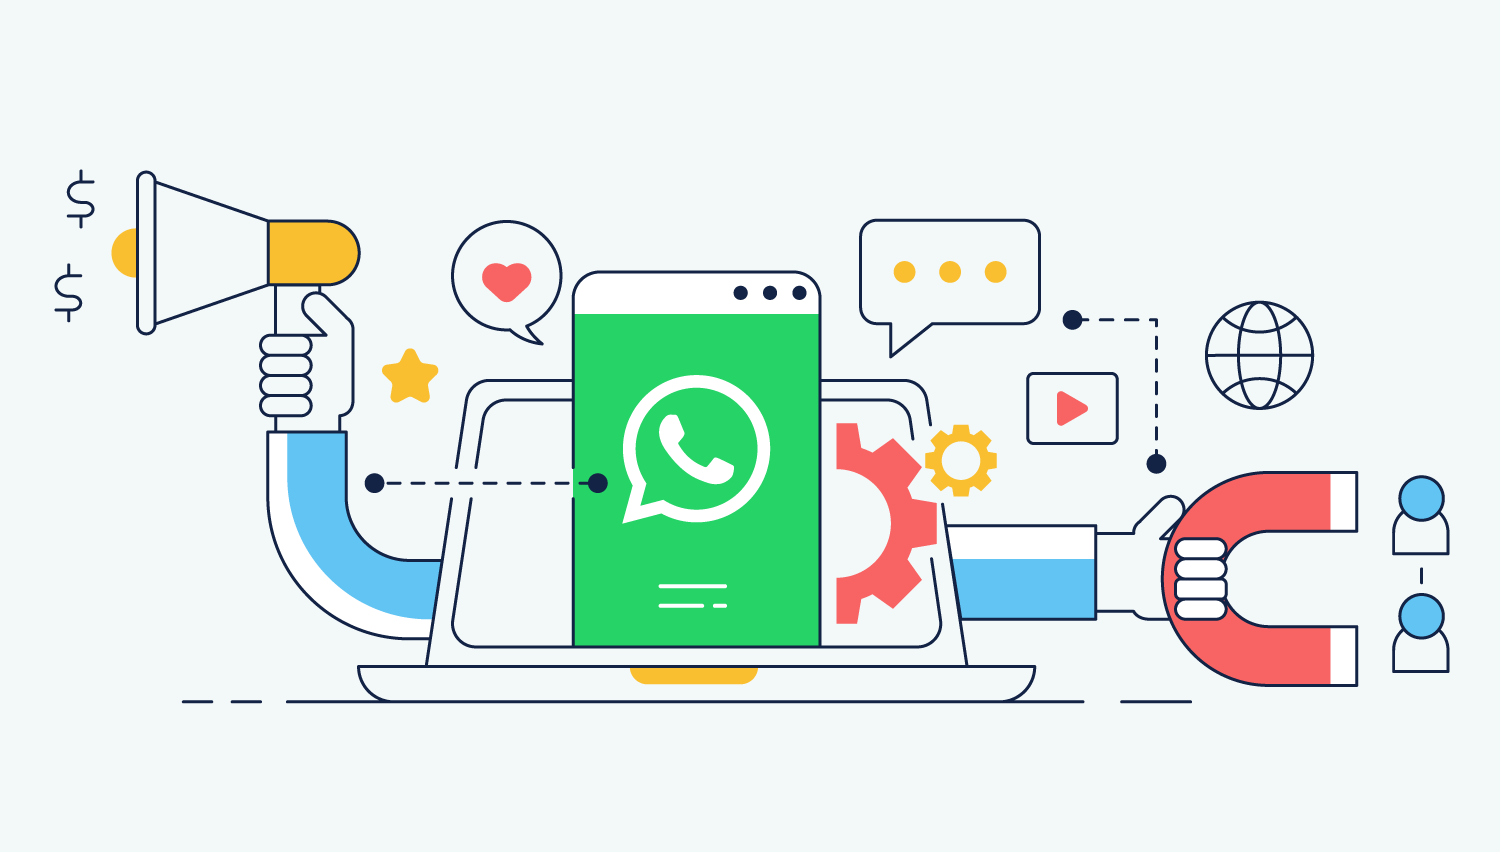 WhatsApp Business Marketing - Making Sales With Group Chats